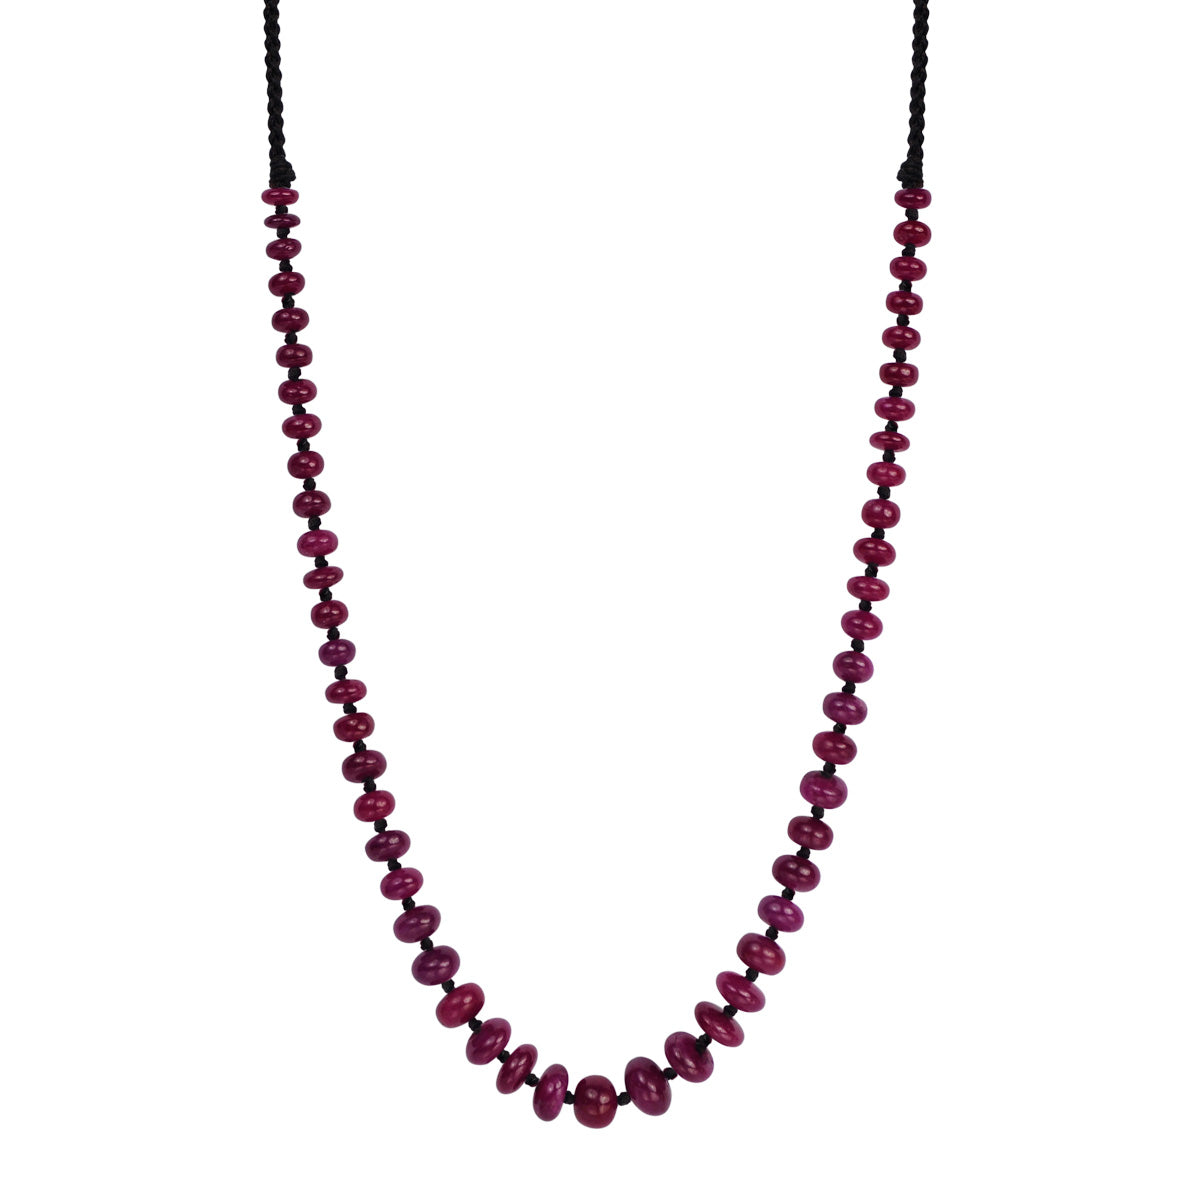 18K Gold Smooth Ruby Knotted Necklace